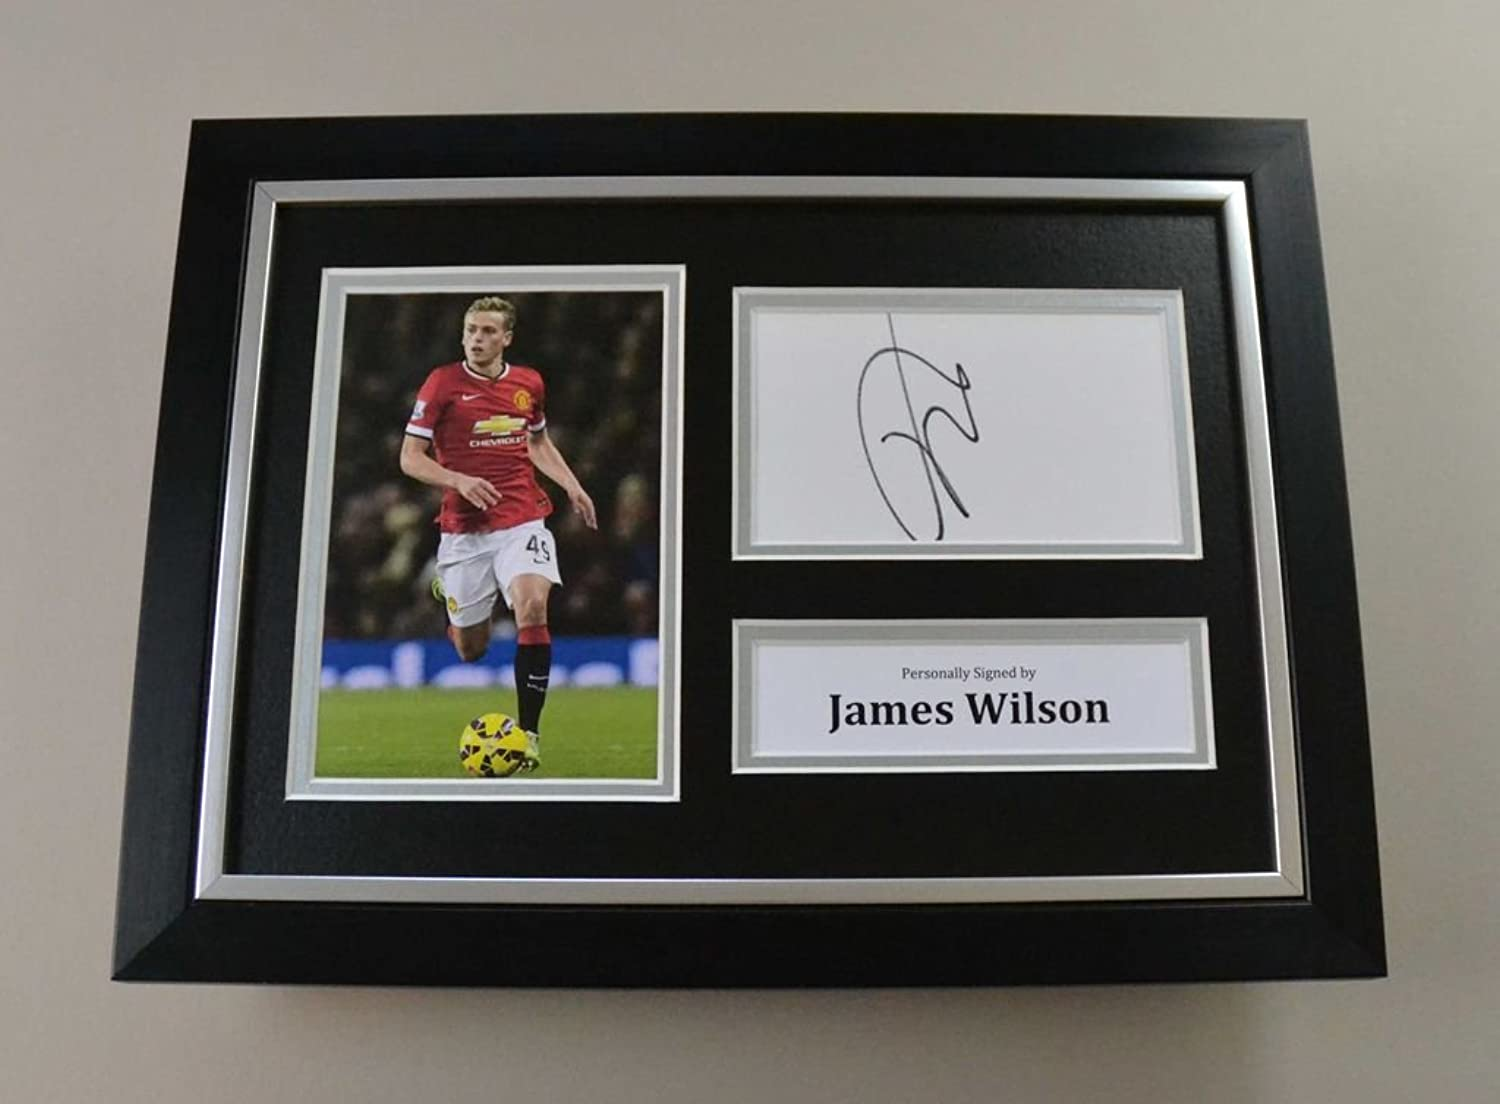 James Wilson Signed A4 Photo Framed Man Utd Autograph Display Memorabilia + COA